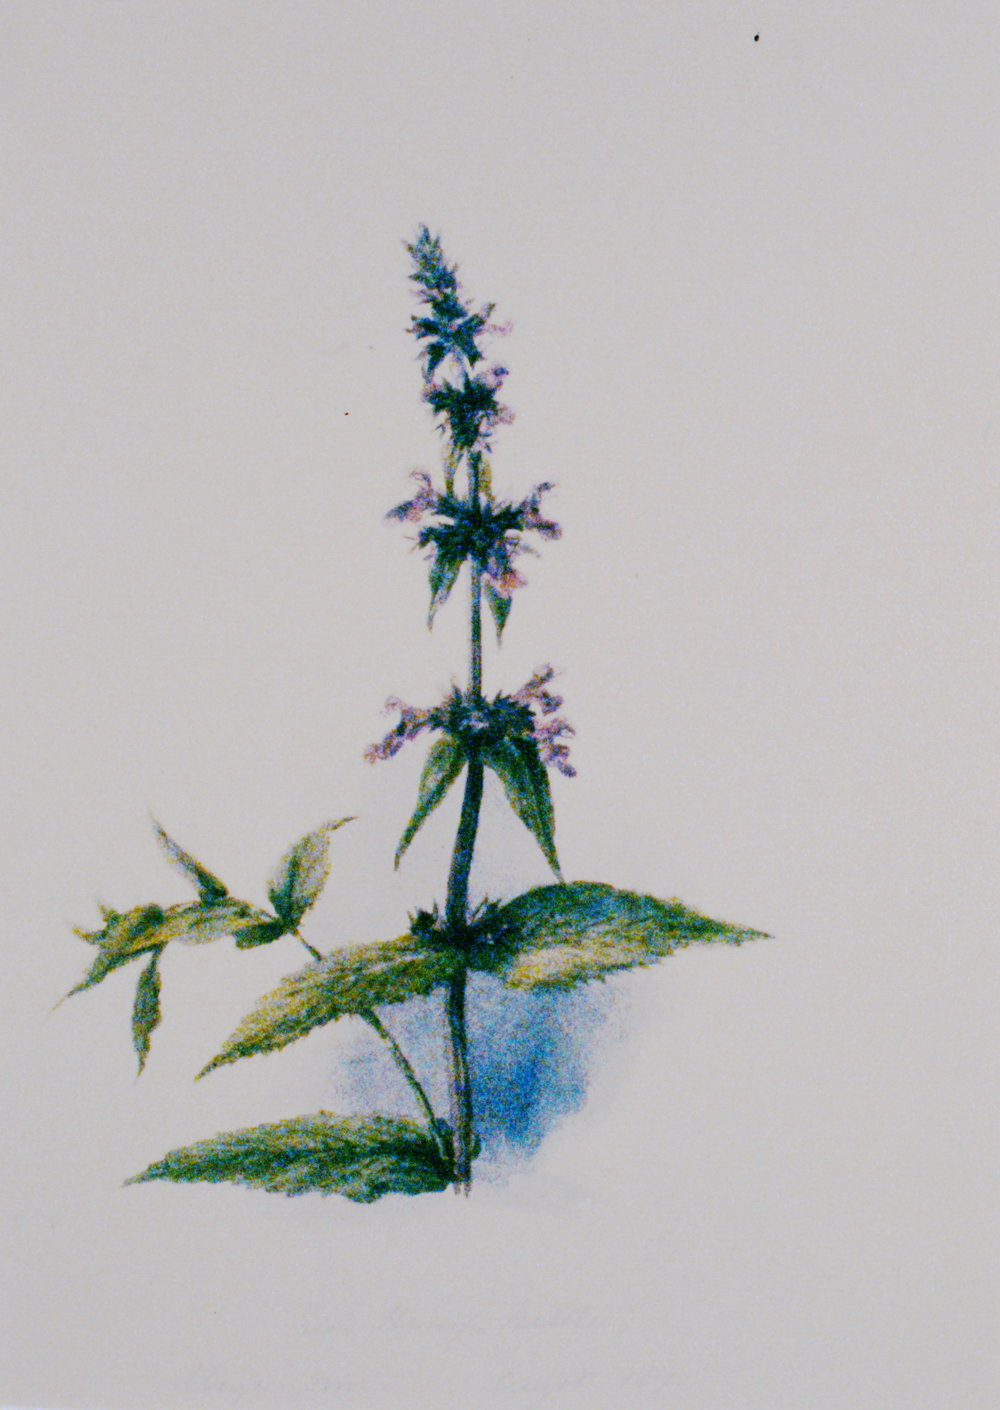 Red Hemp Nettle, Julia Bullock-Webster